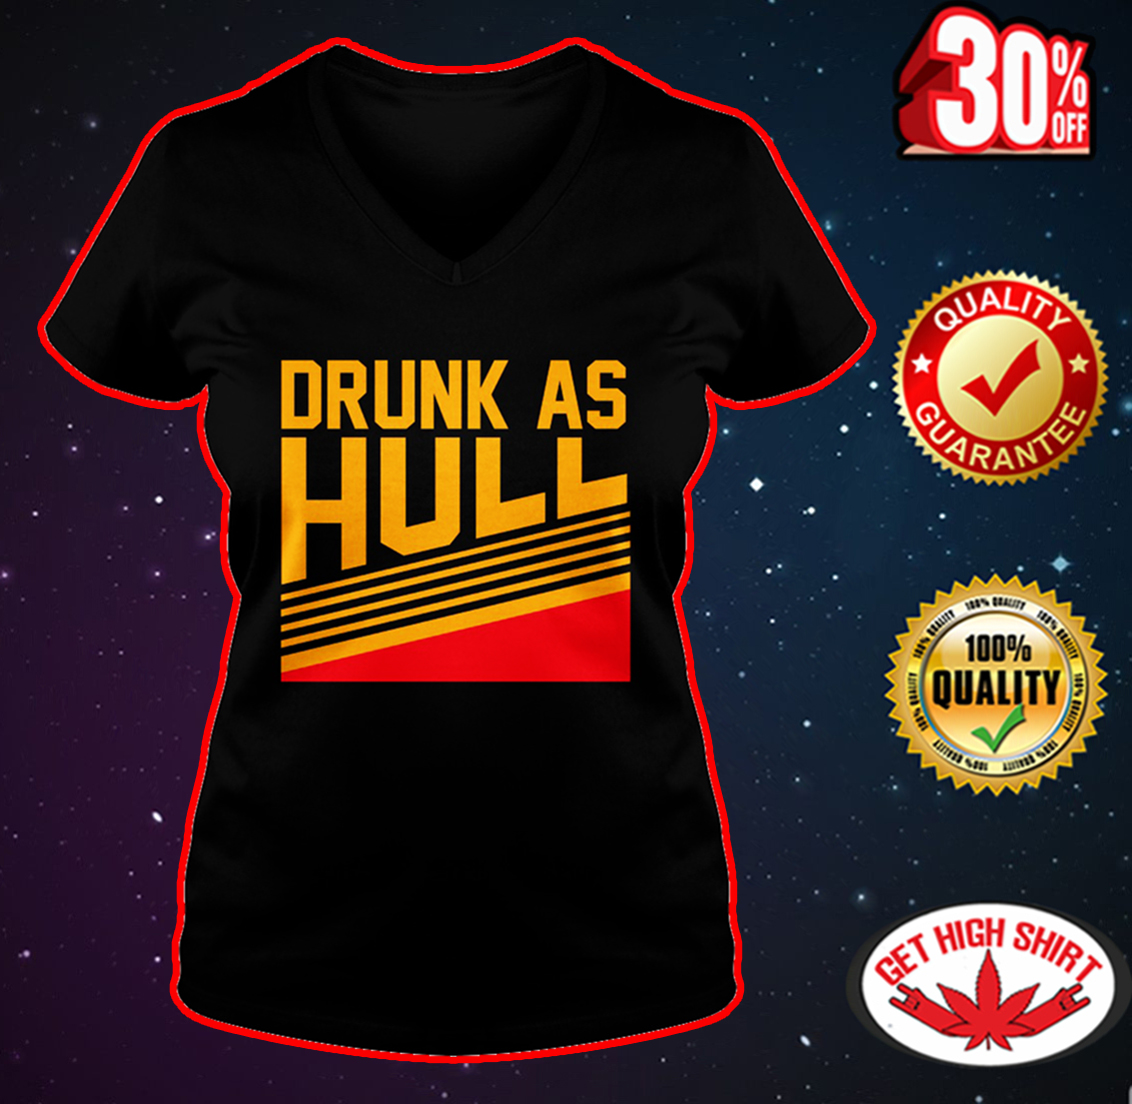 Drunk as hull v-neck